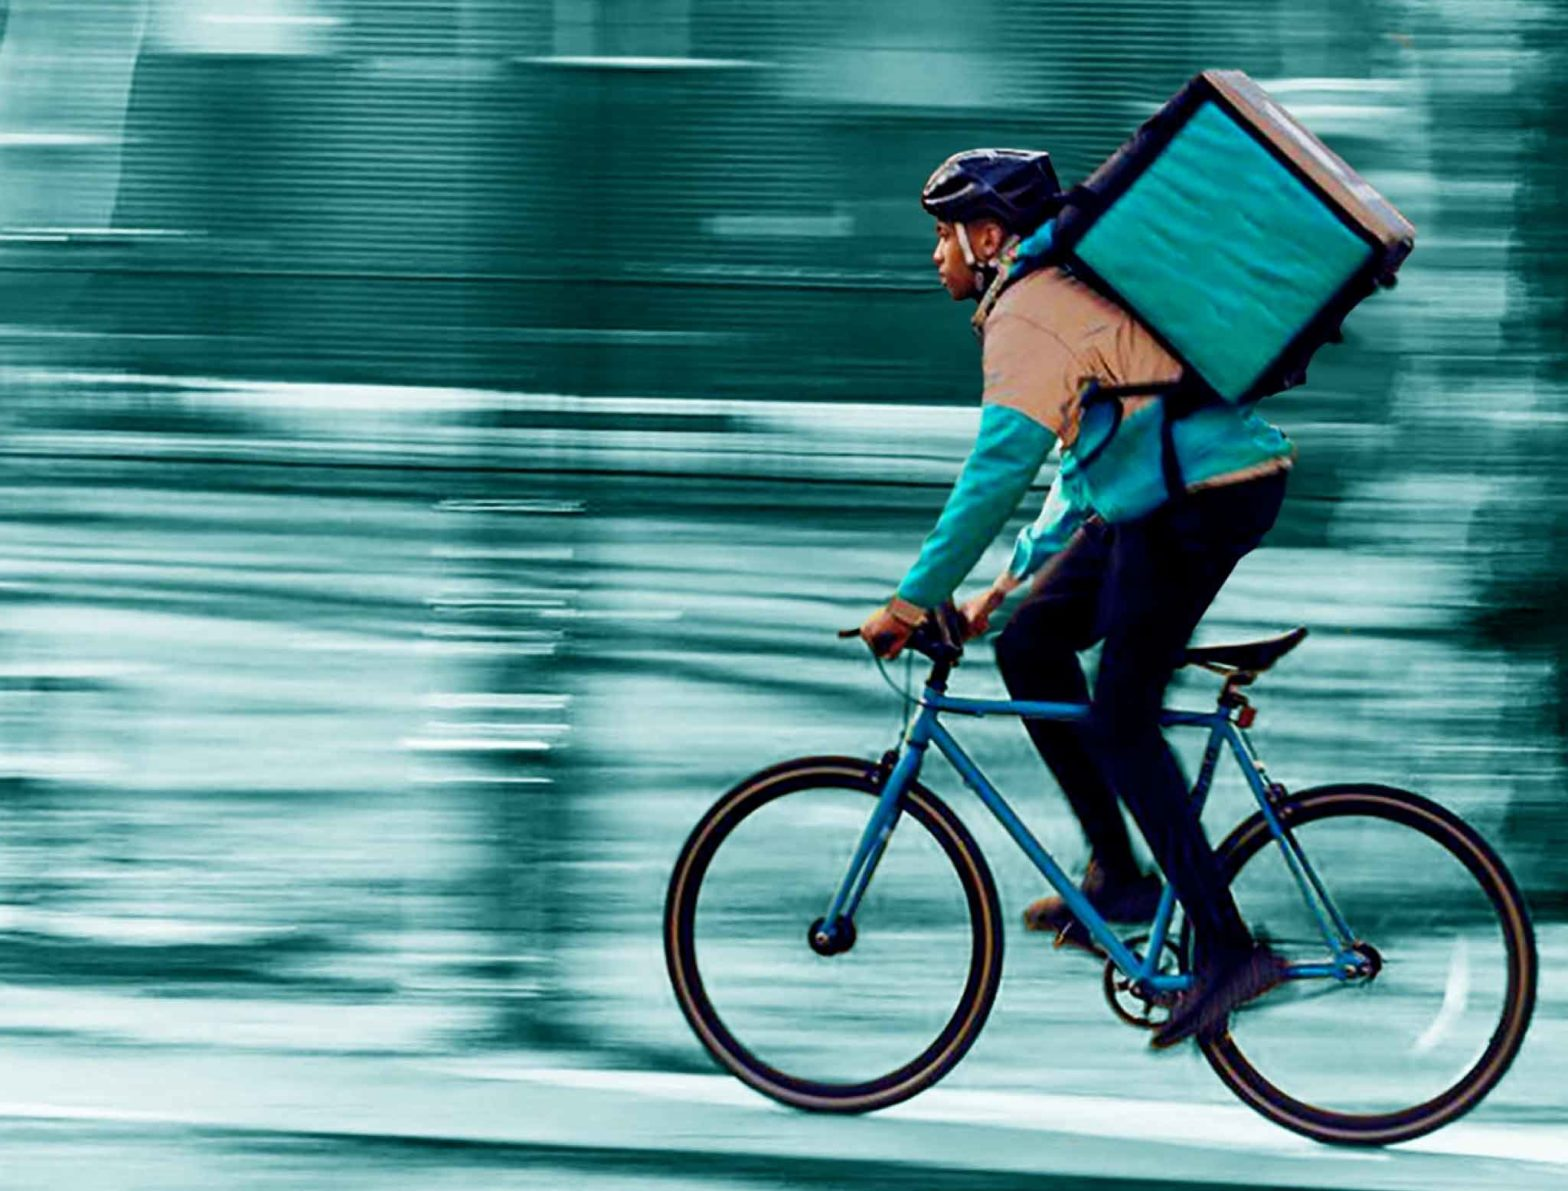 Rider delivery